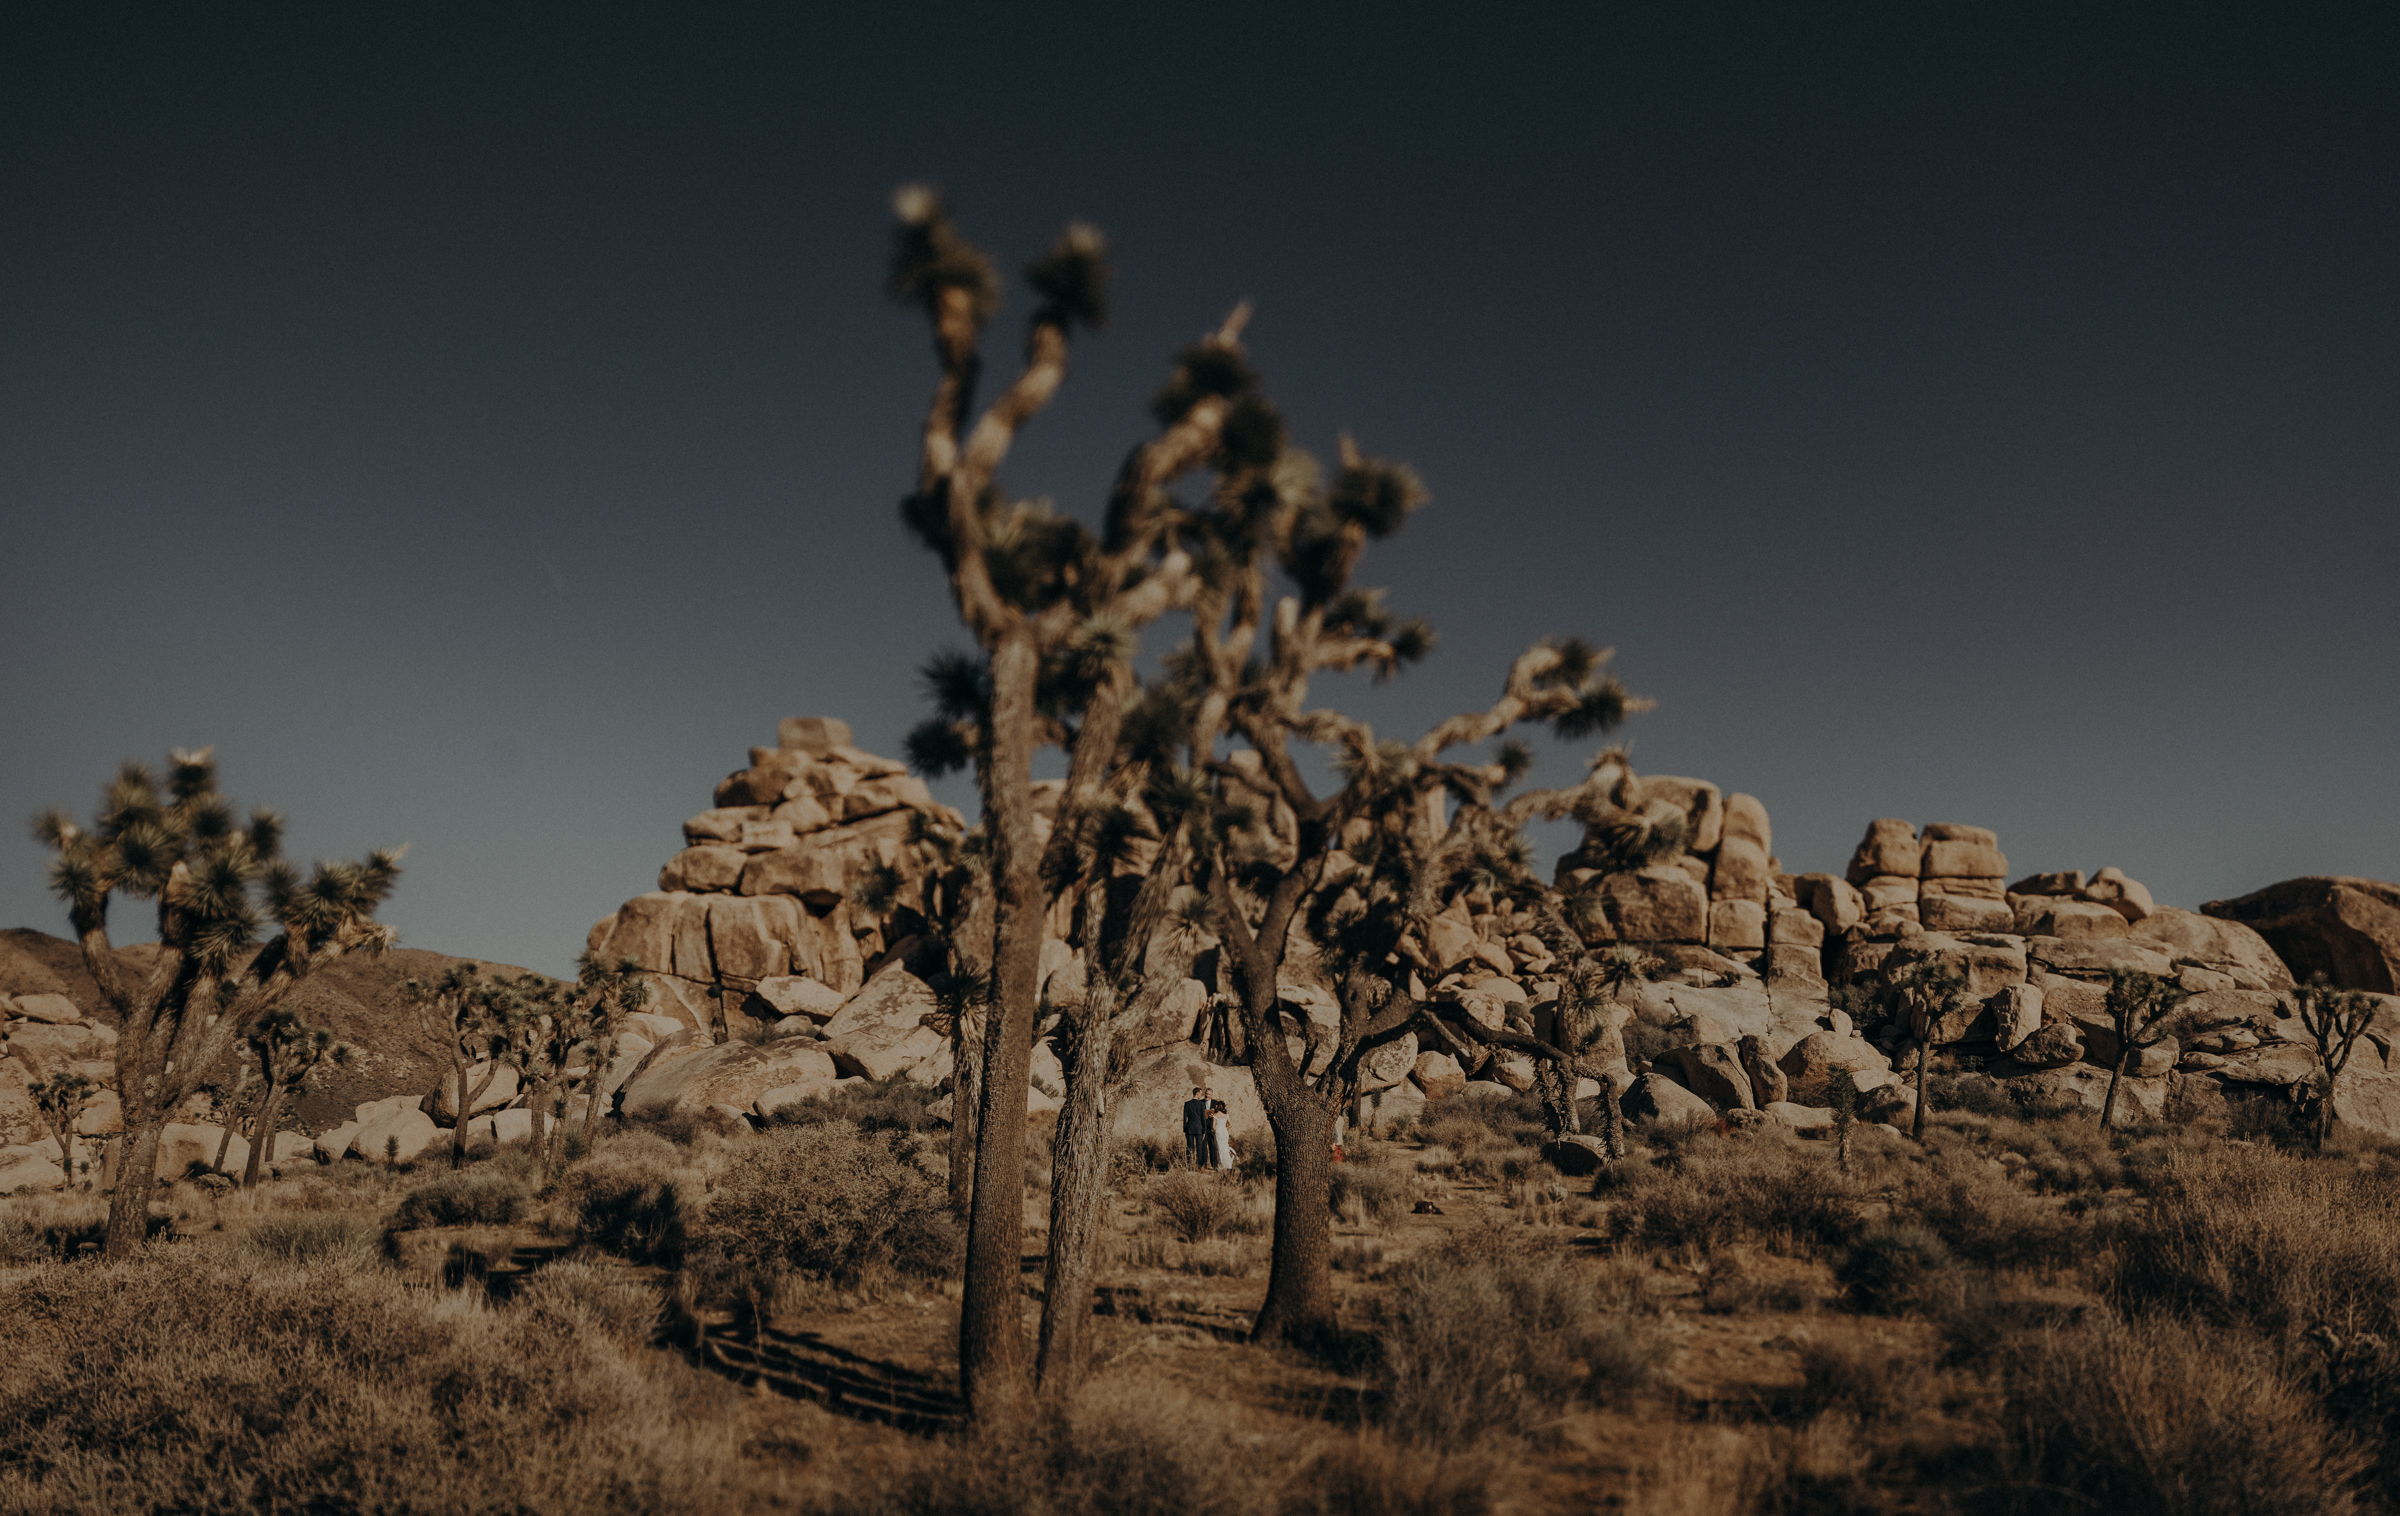 Joshua Tree Elopement - Los Angeles Wedding Photographers - IsaiahAndTaylor.com-023.jpg